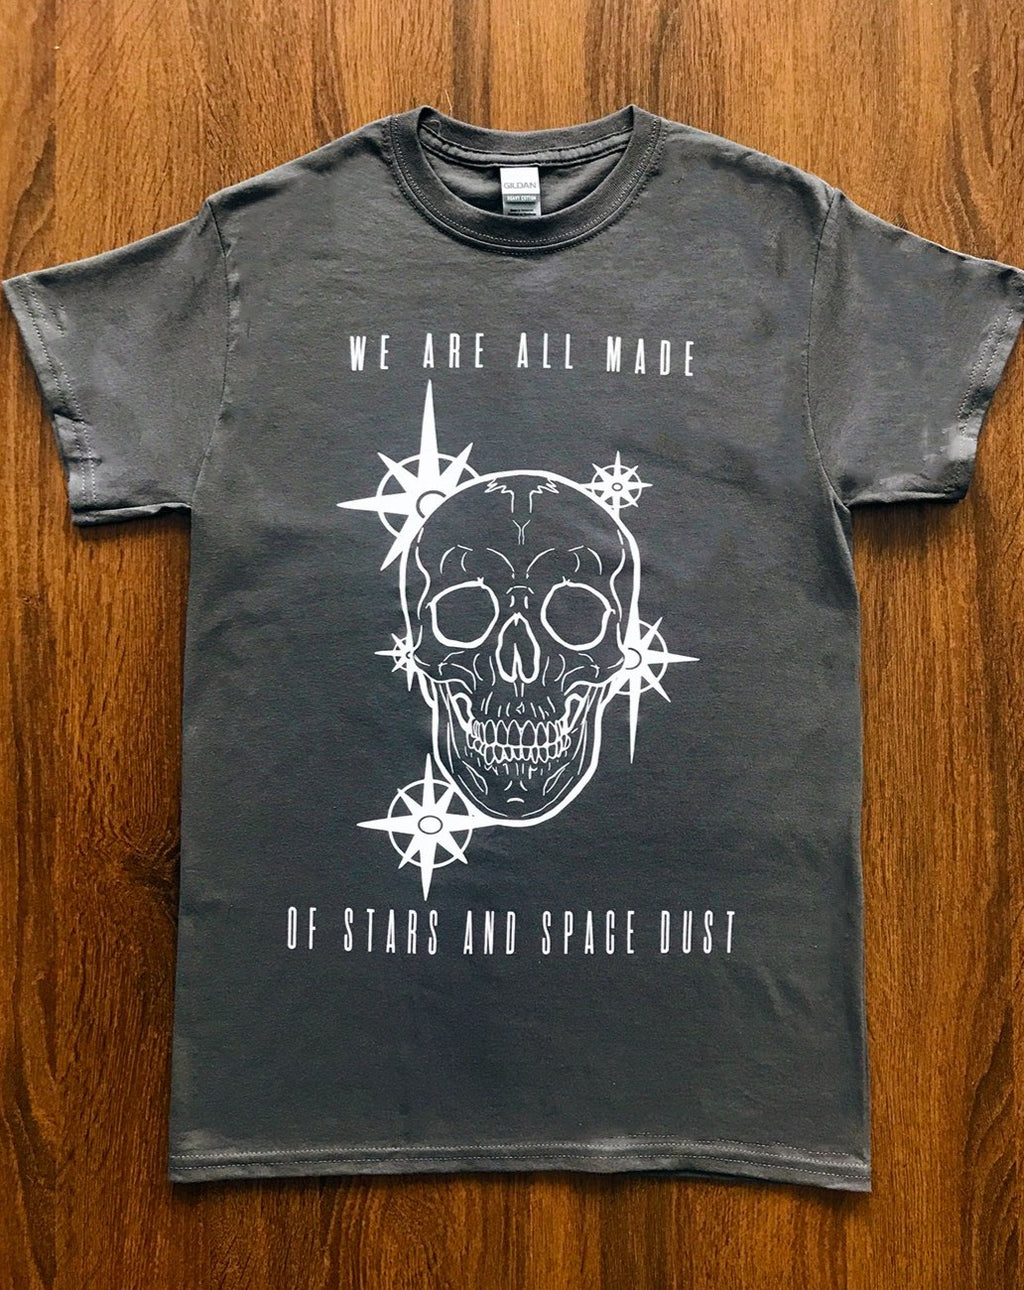 We are Made of Stars and Space Dust Tee Shirt